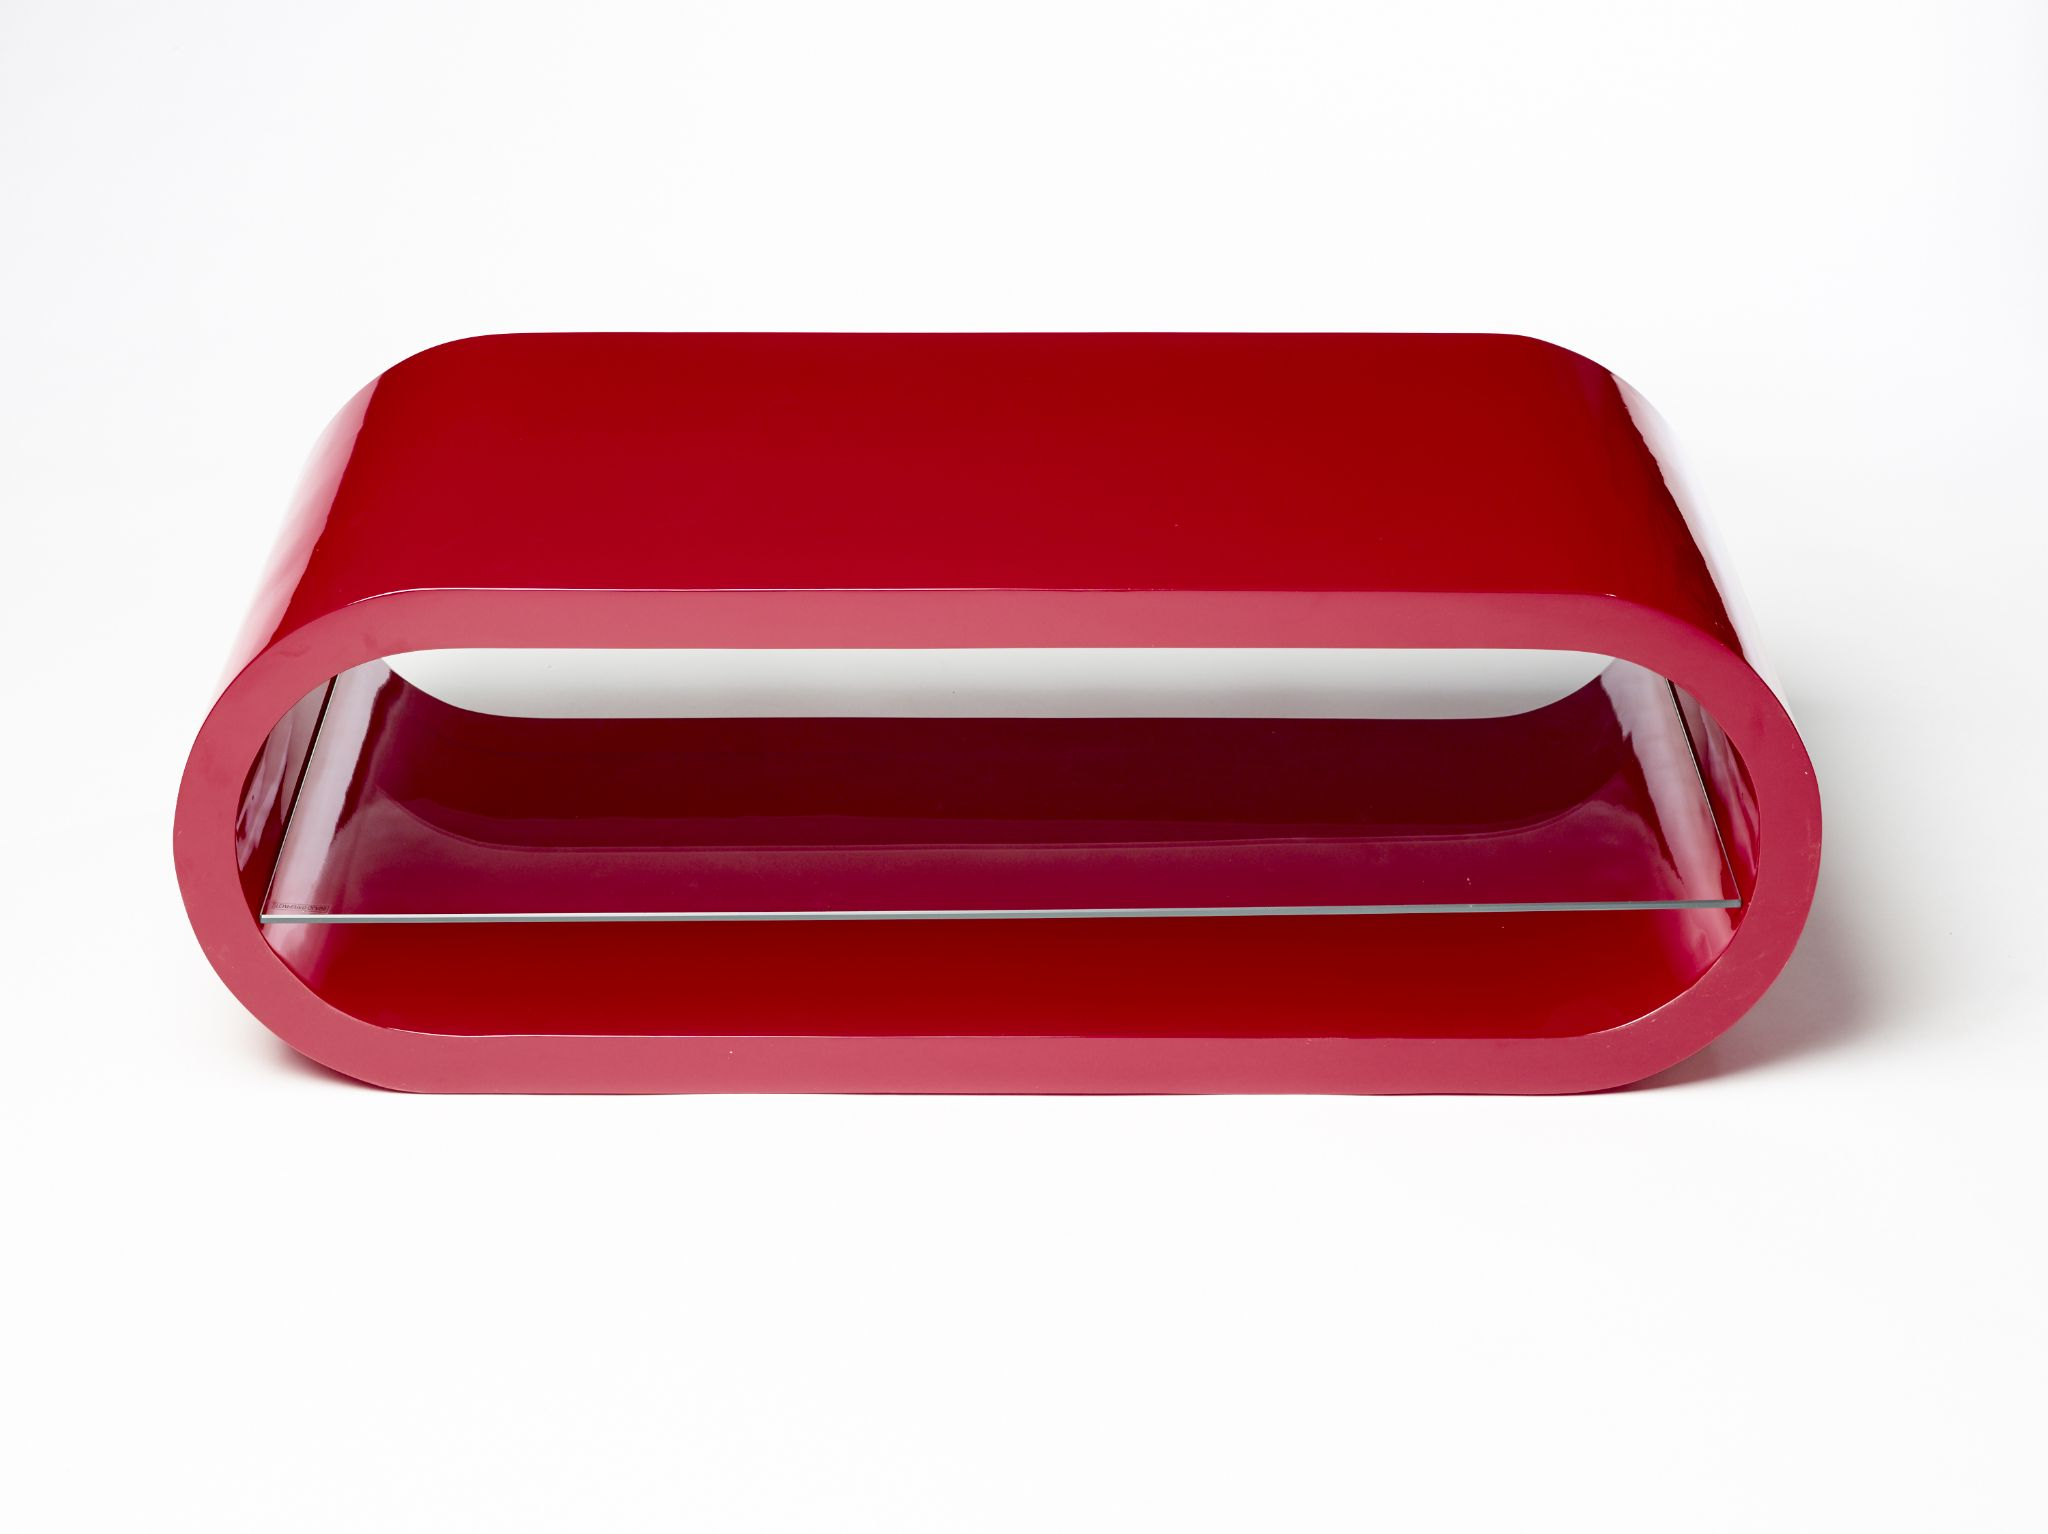 Fashionable Modern Designer High Gloss Oval Tv Stand Cabinet High Red Gloss Inside Red Modern Tv Stands (View 2 of 20)